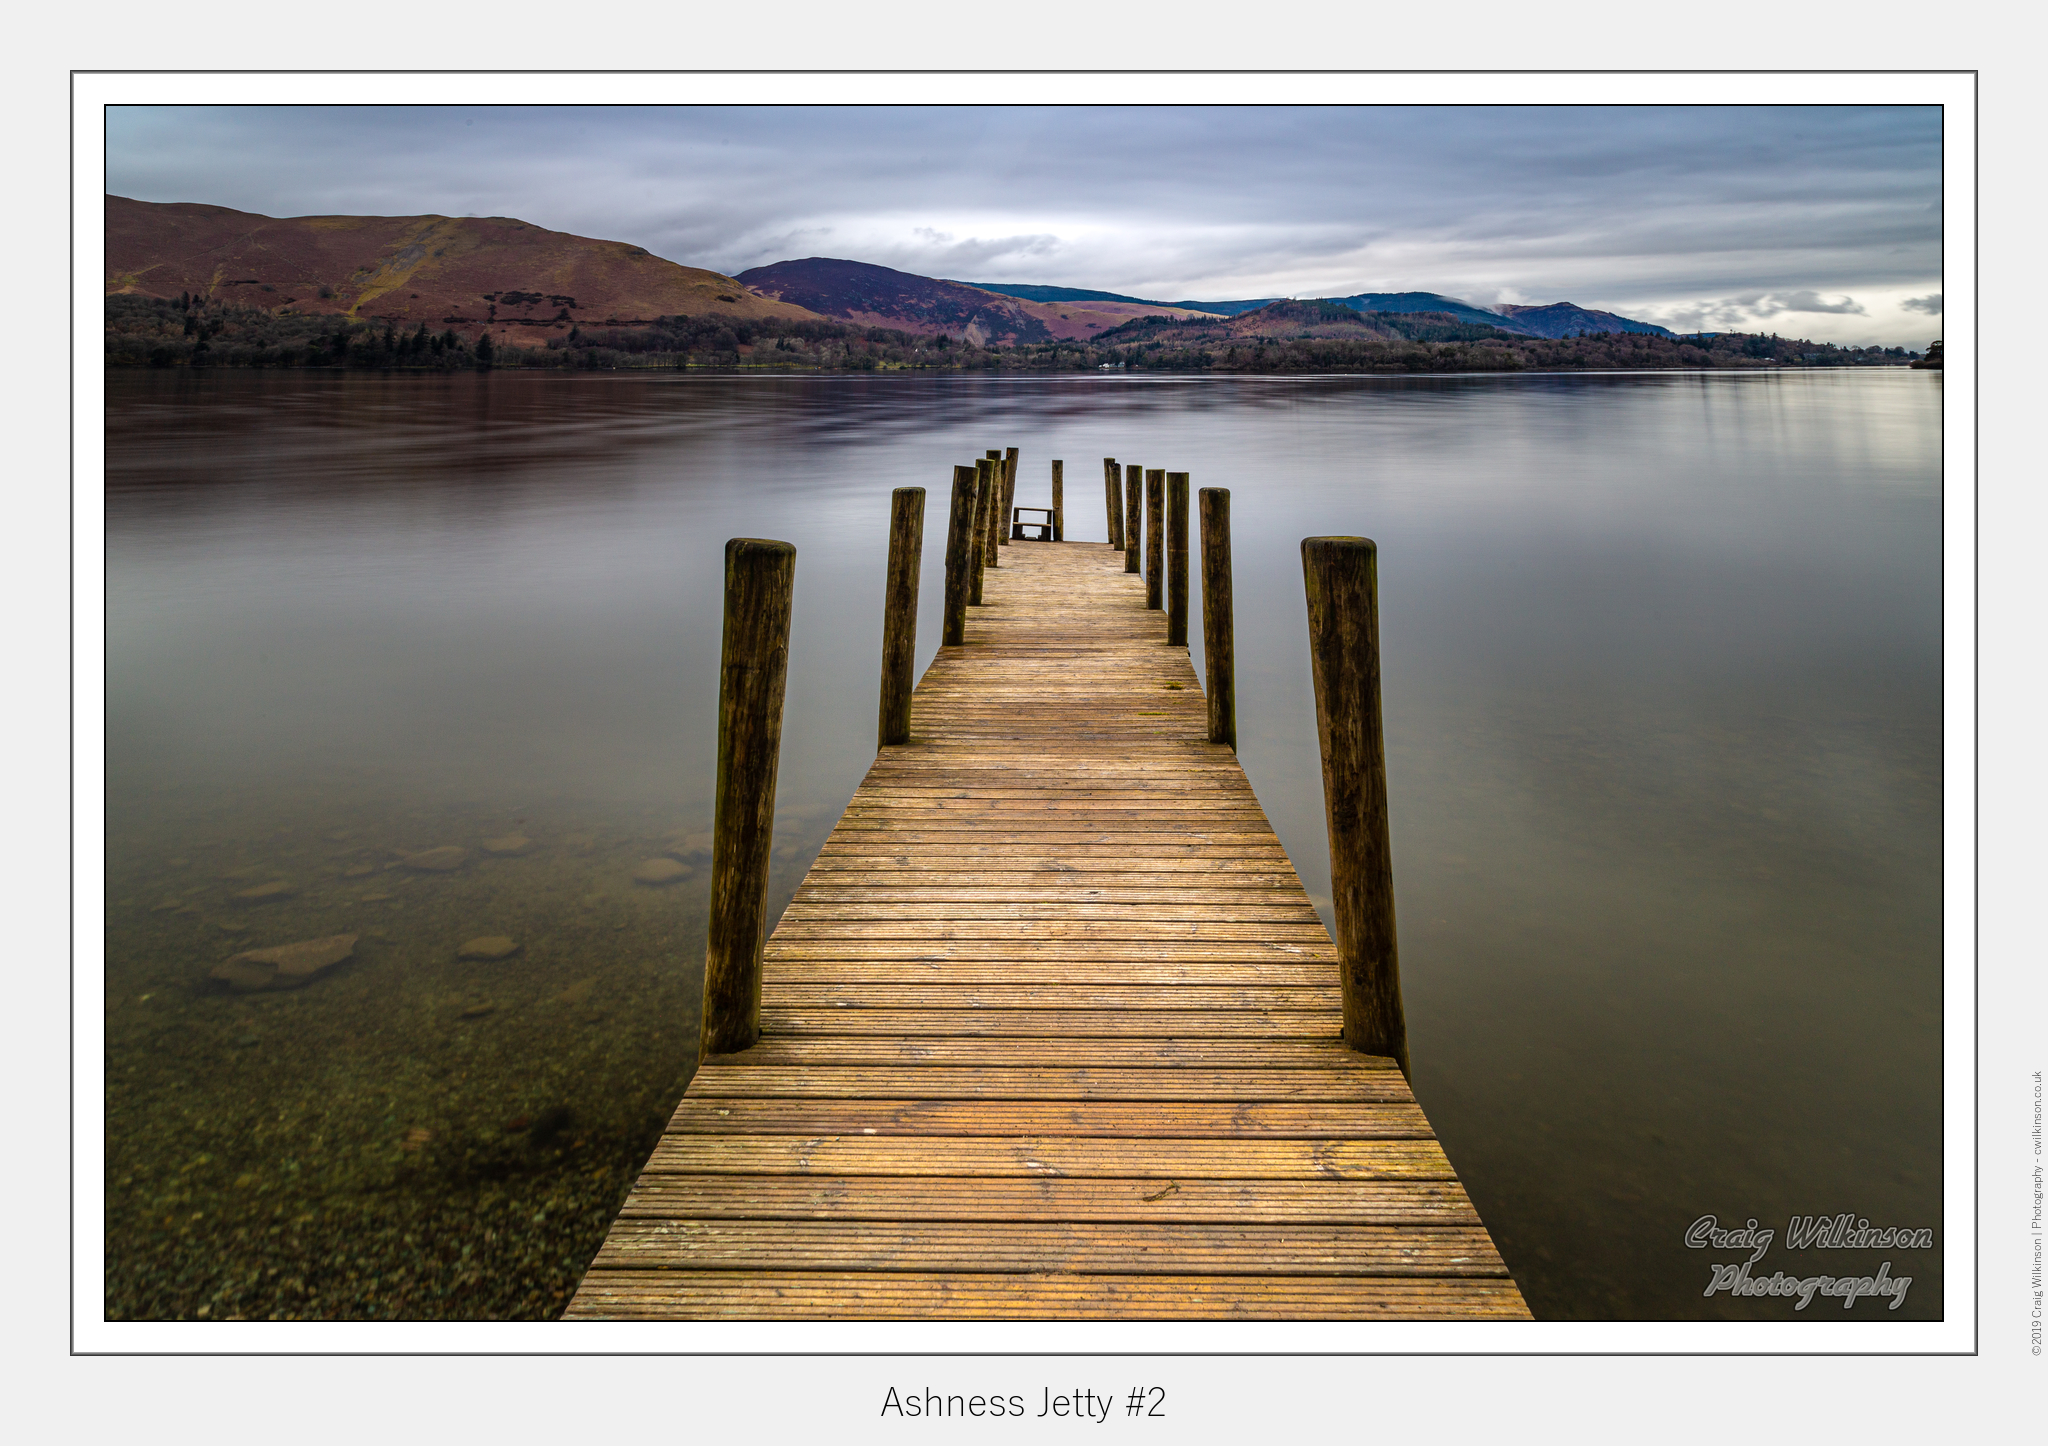 01-Ashness Jetty #2 - (5760 x 3840).jpg